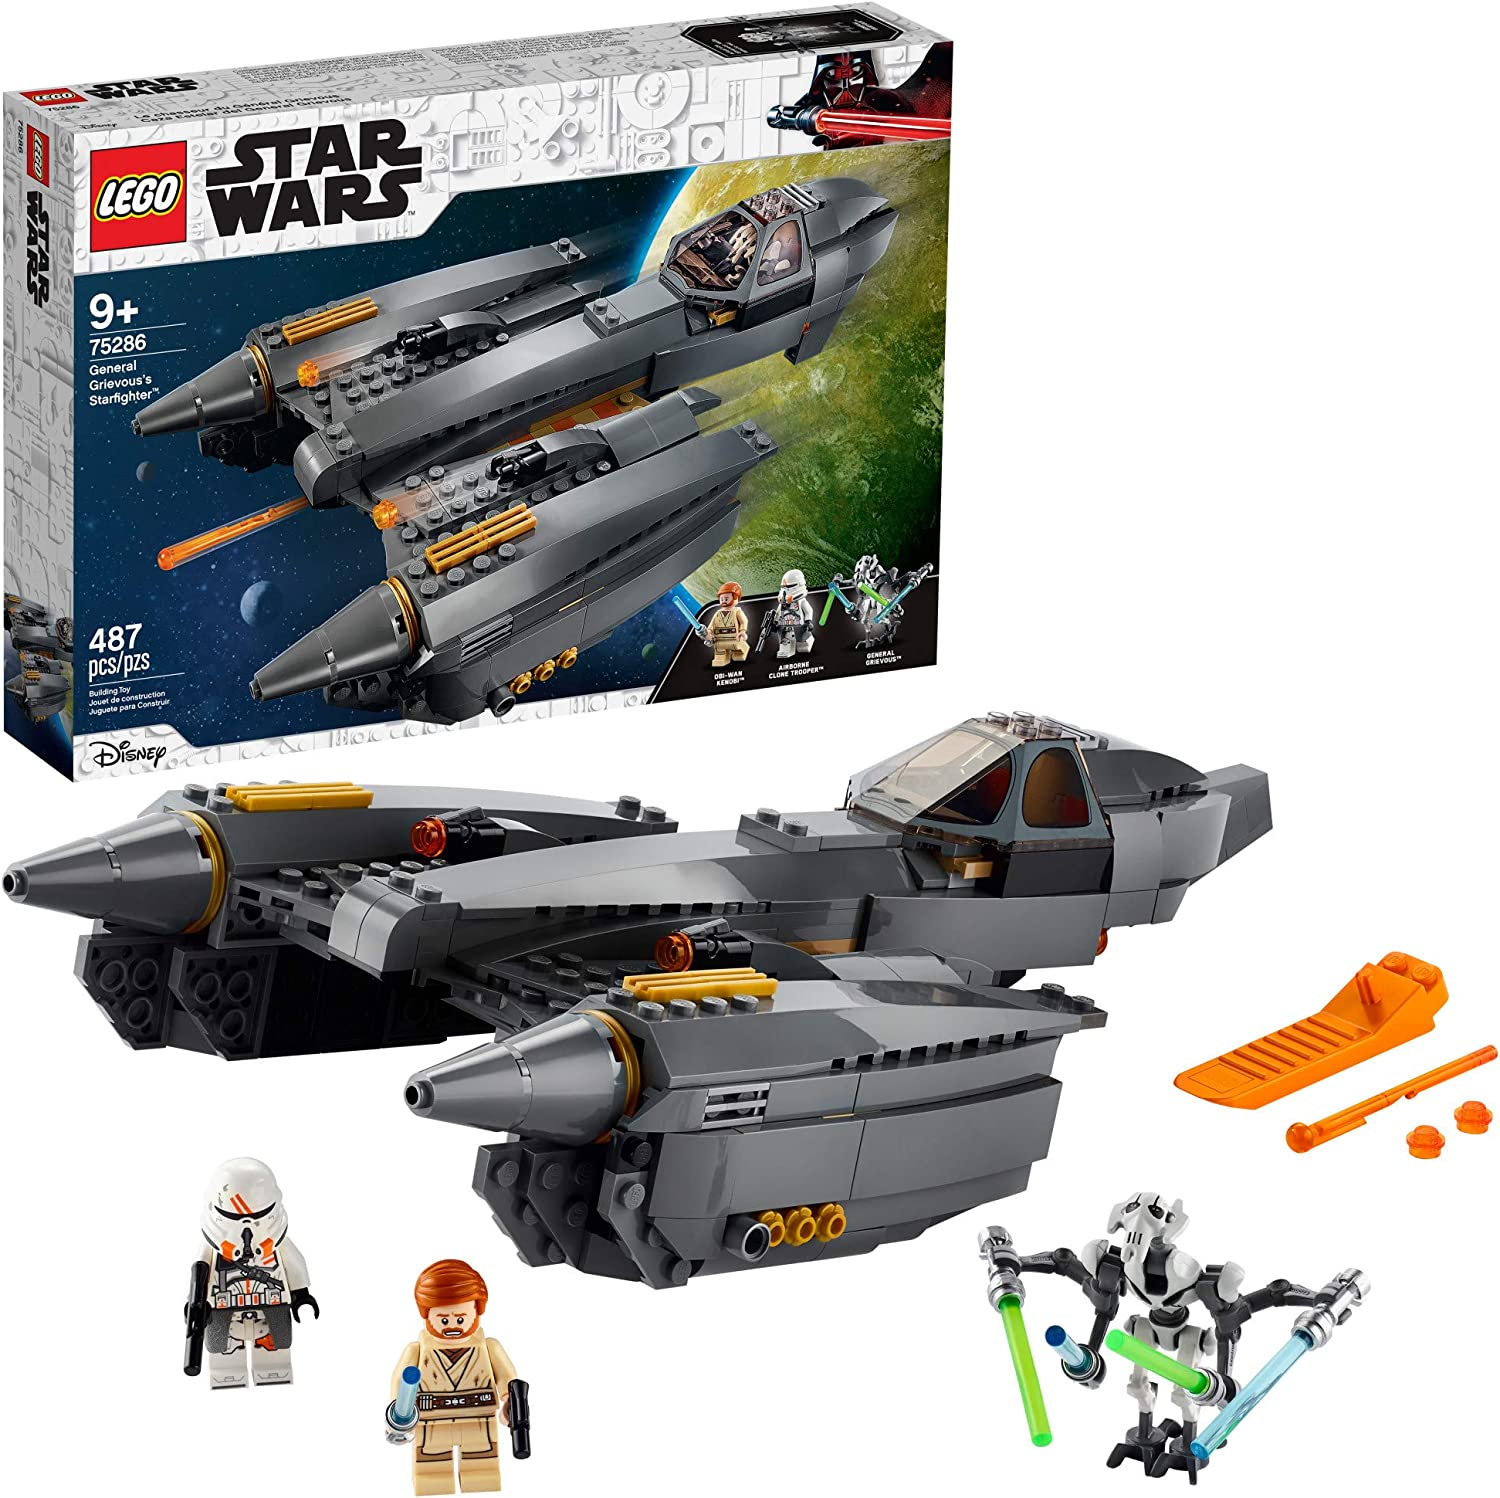 Amazon Com Lego Star Wars Revenge Of The Sith General Grievous S Starfighter 75286 Spacecraft Set With General Grievous Obi Wan Kenobi And Airborne Clone Trooper Minifigures New 2020 487 Pieces Toys Games